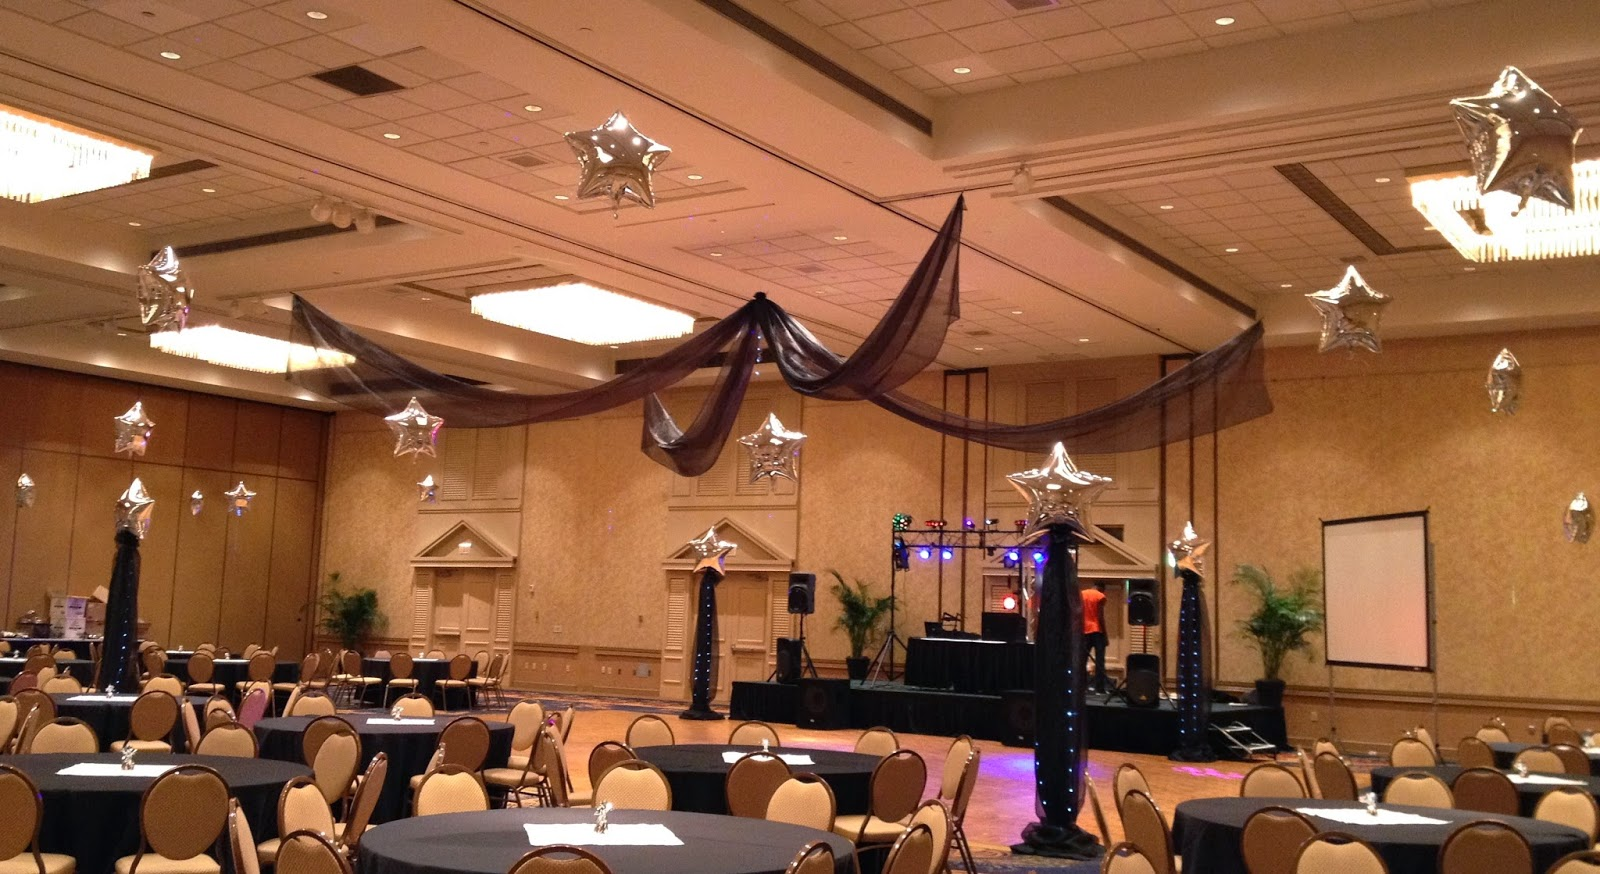 Party People Event Decorating Company Night Under The